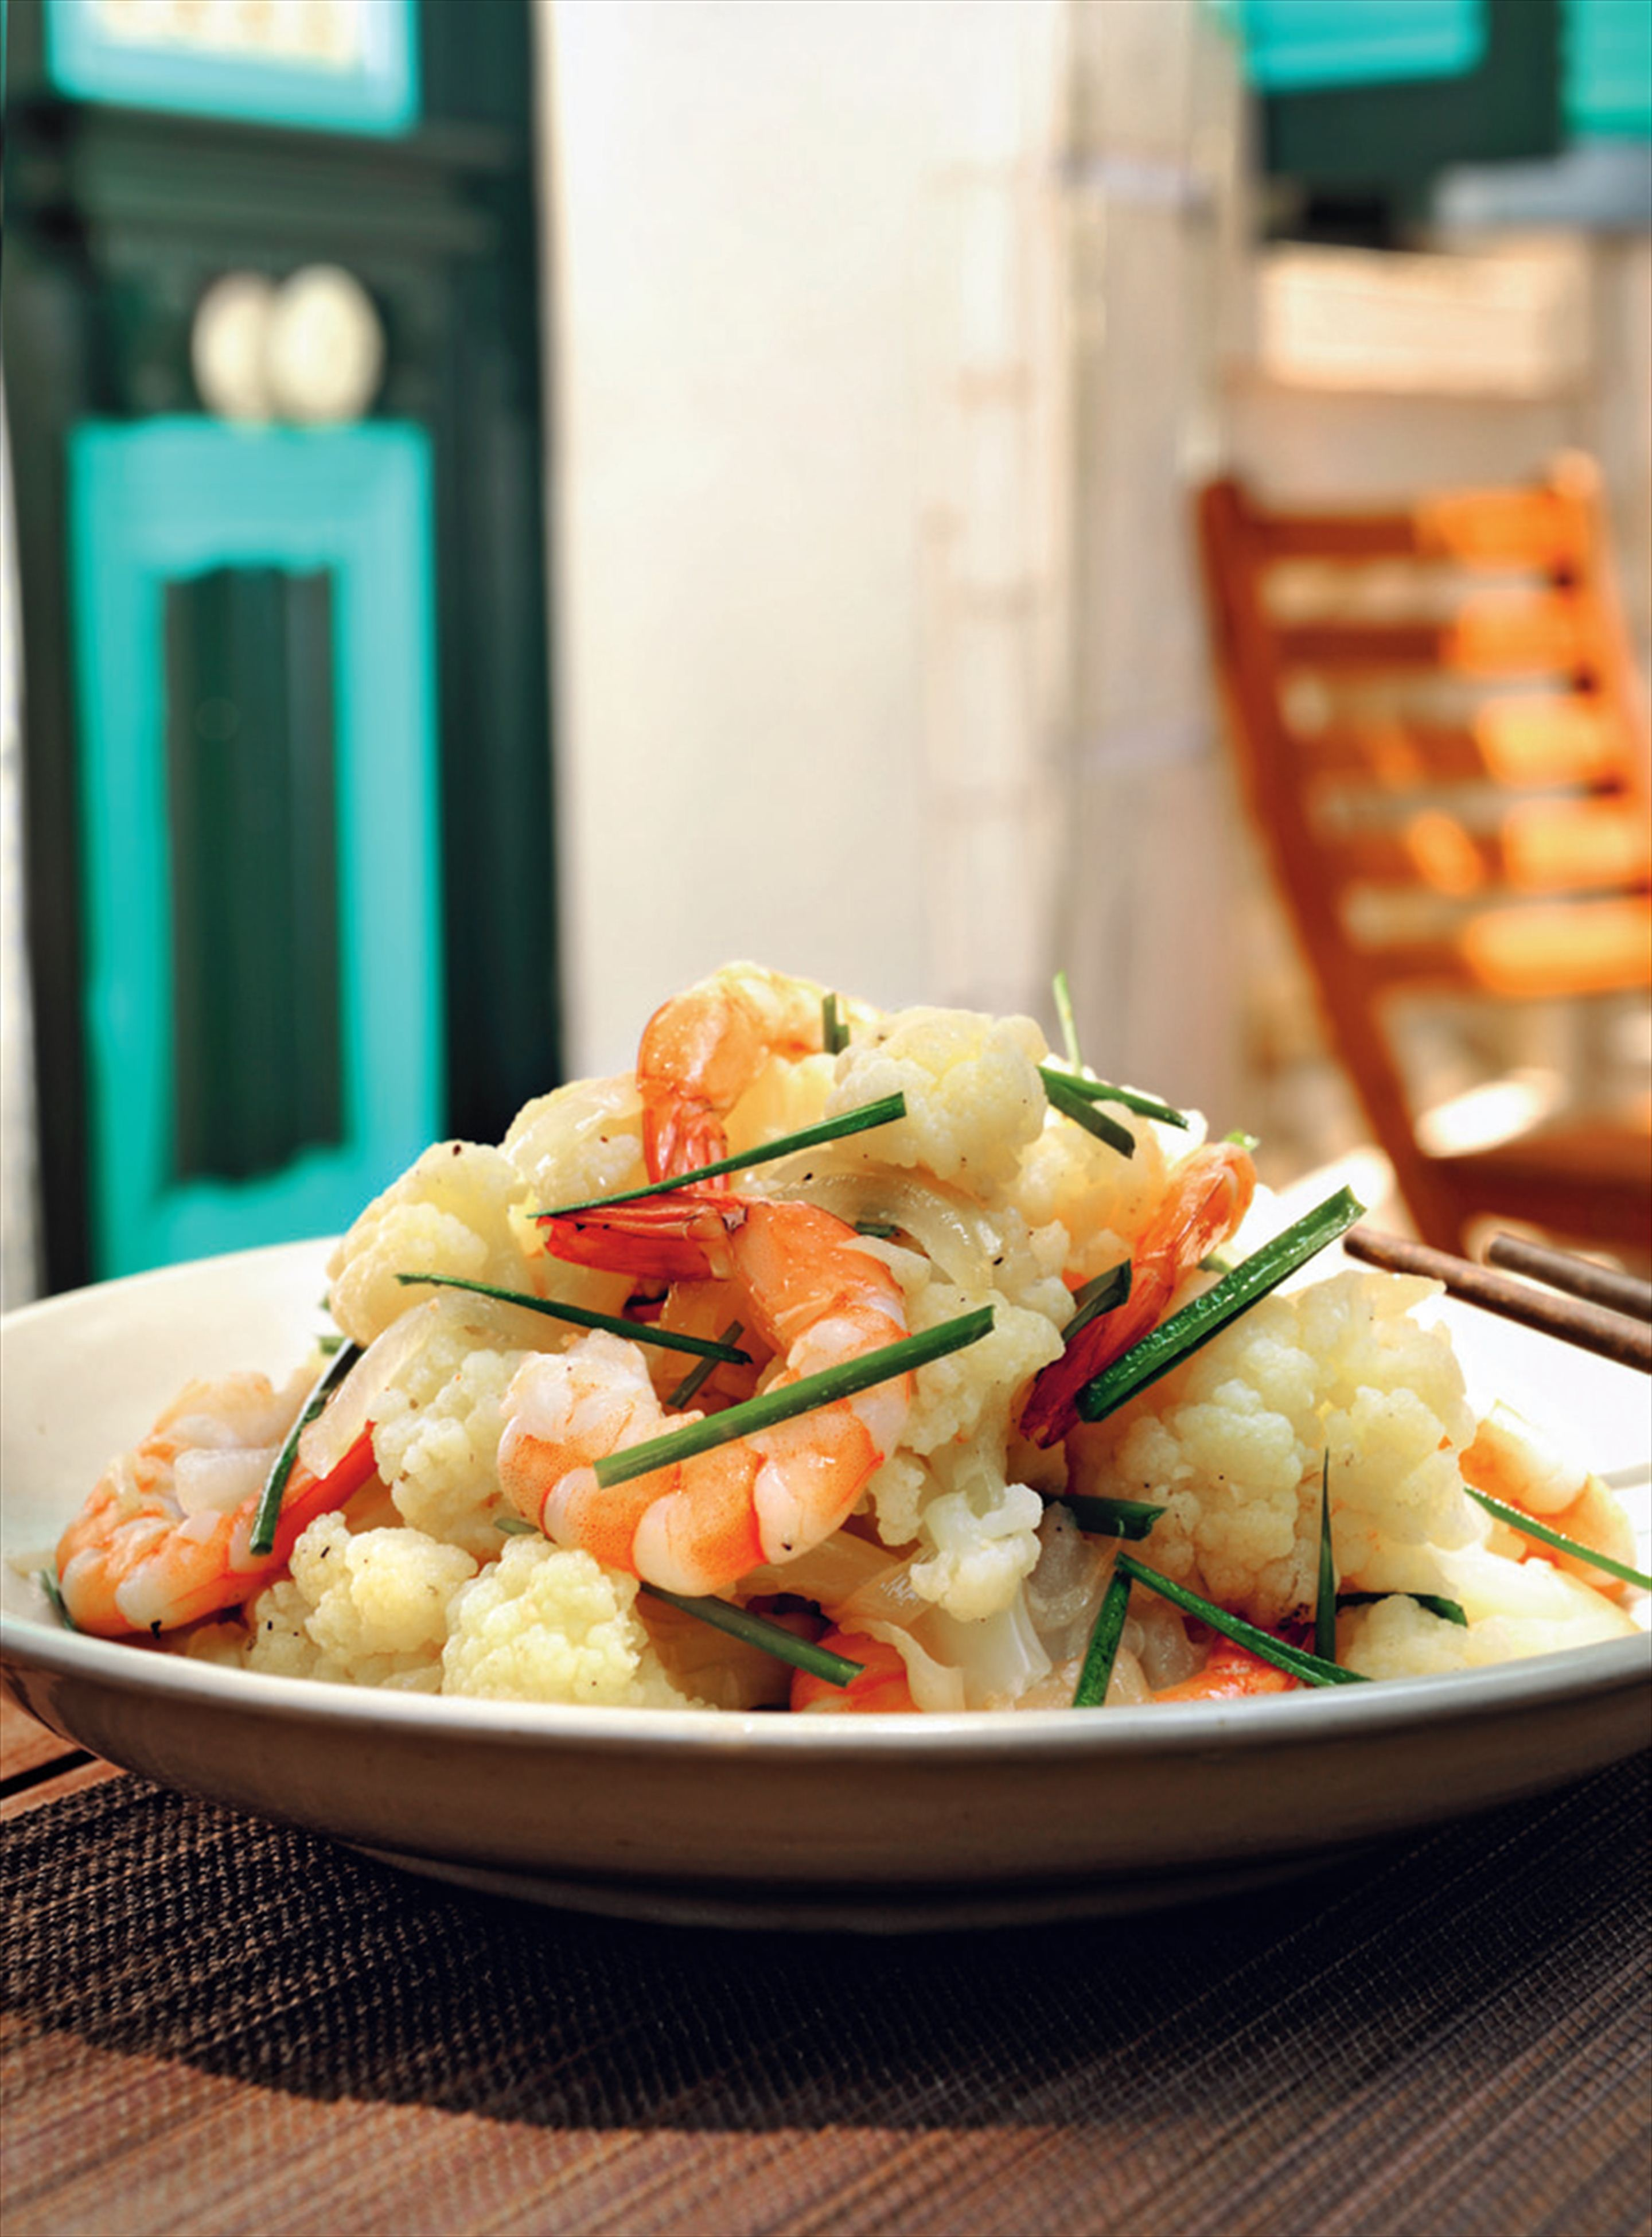 Stir-fried cauliflower and prawns